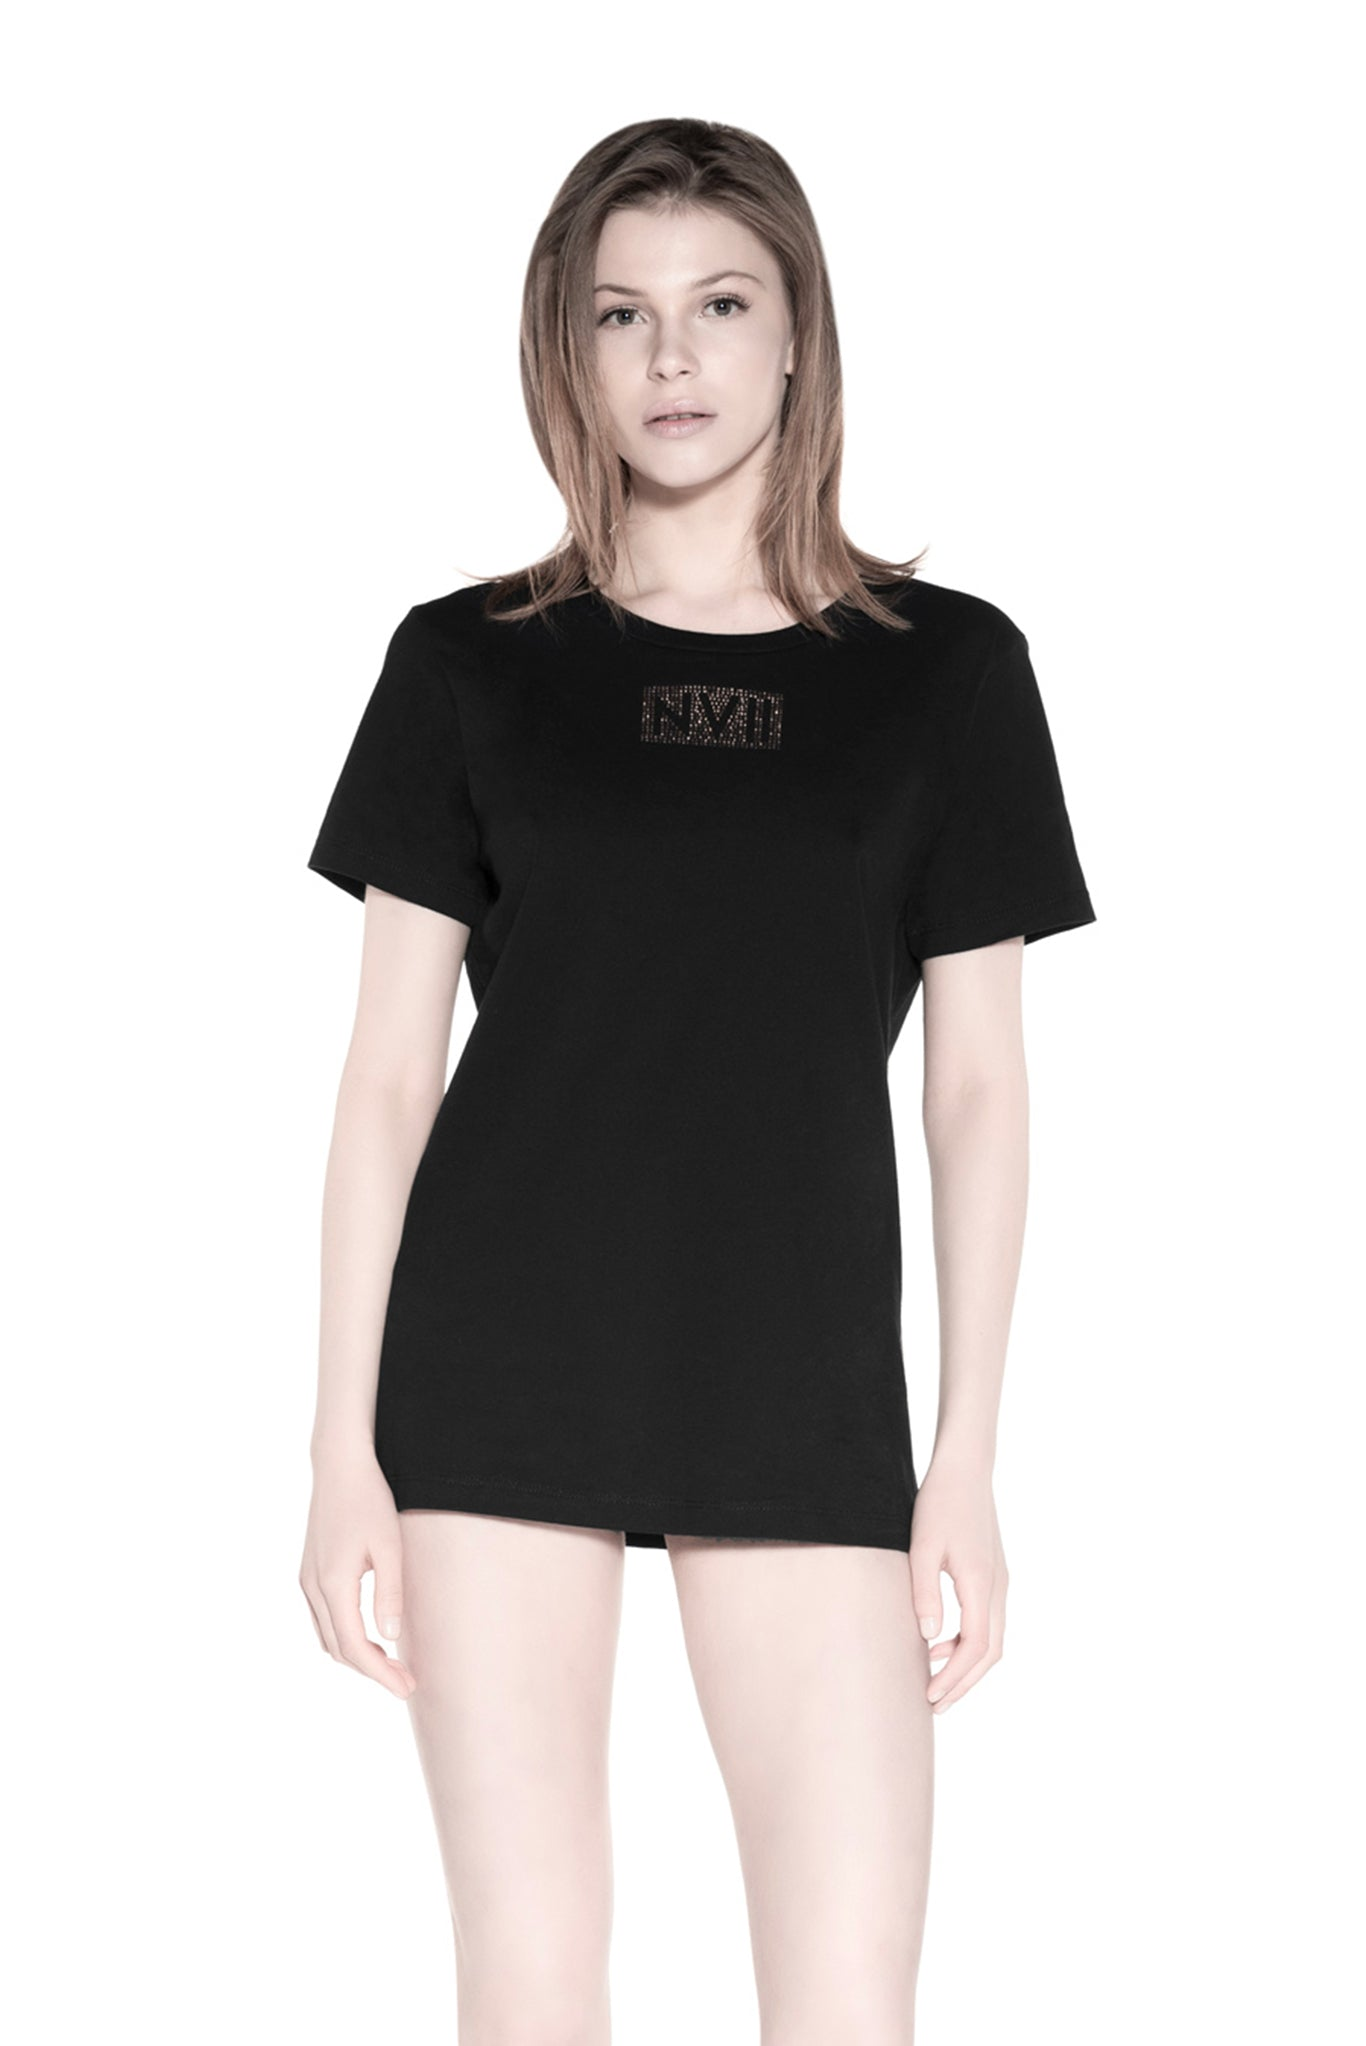 NOMAD VII - ROSE GOLD CRYSTAL NVII COTTON TSHIRT (SMALL LOGO) - NOMAD VII X ANNE BOWEN